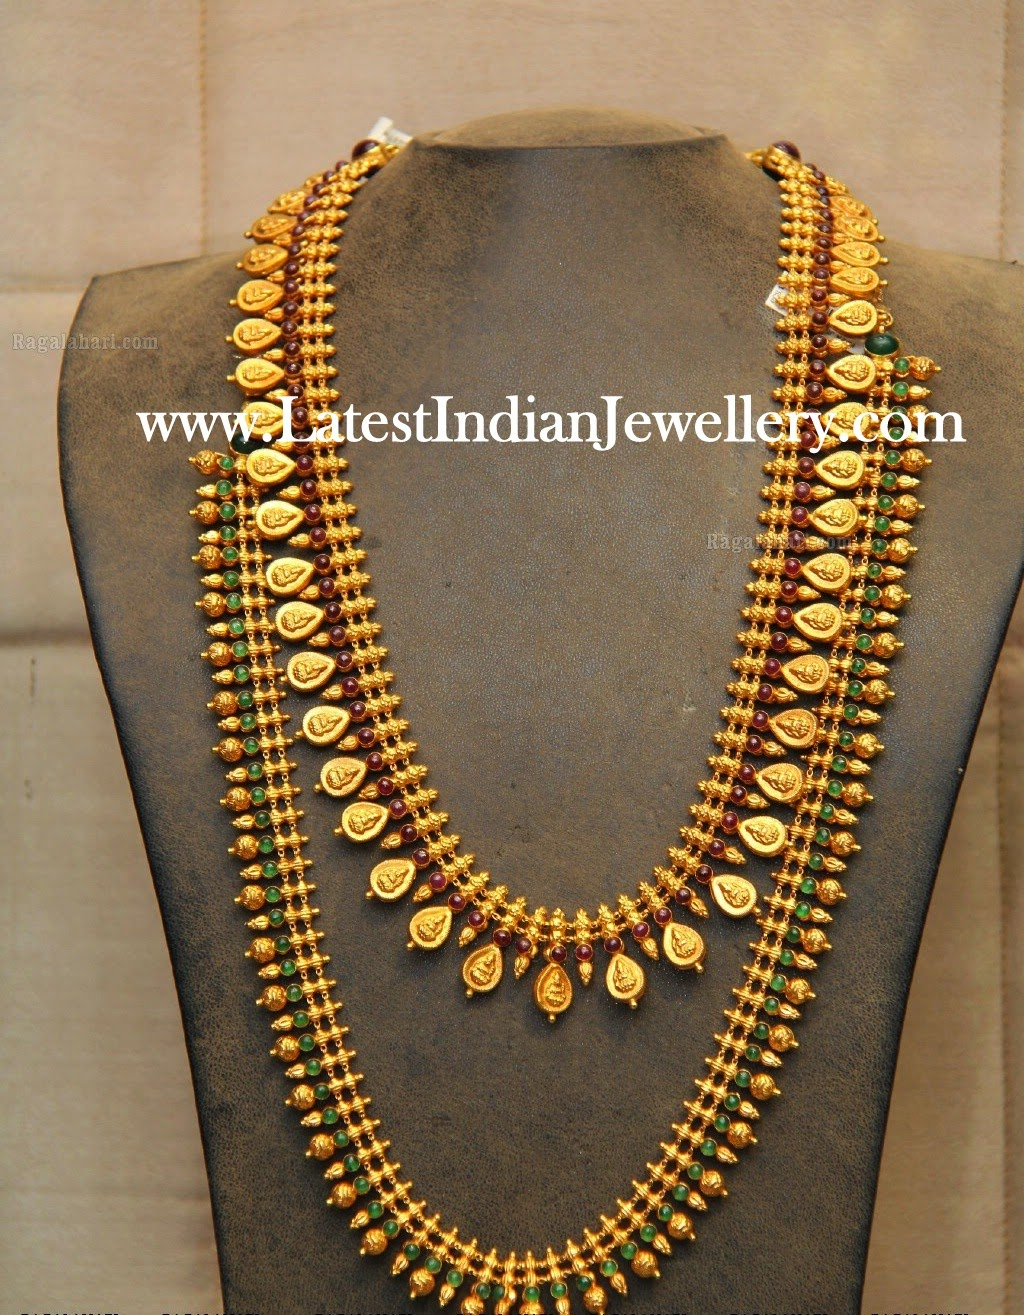 Reversible Kasu Mala And Mullamottu Haram Latest Indian